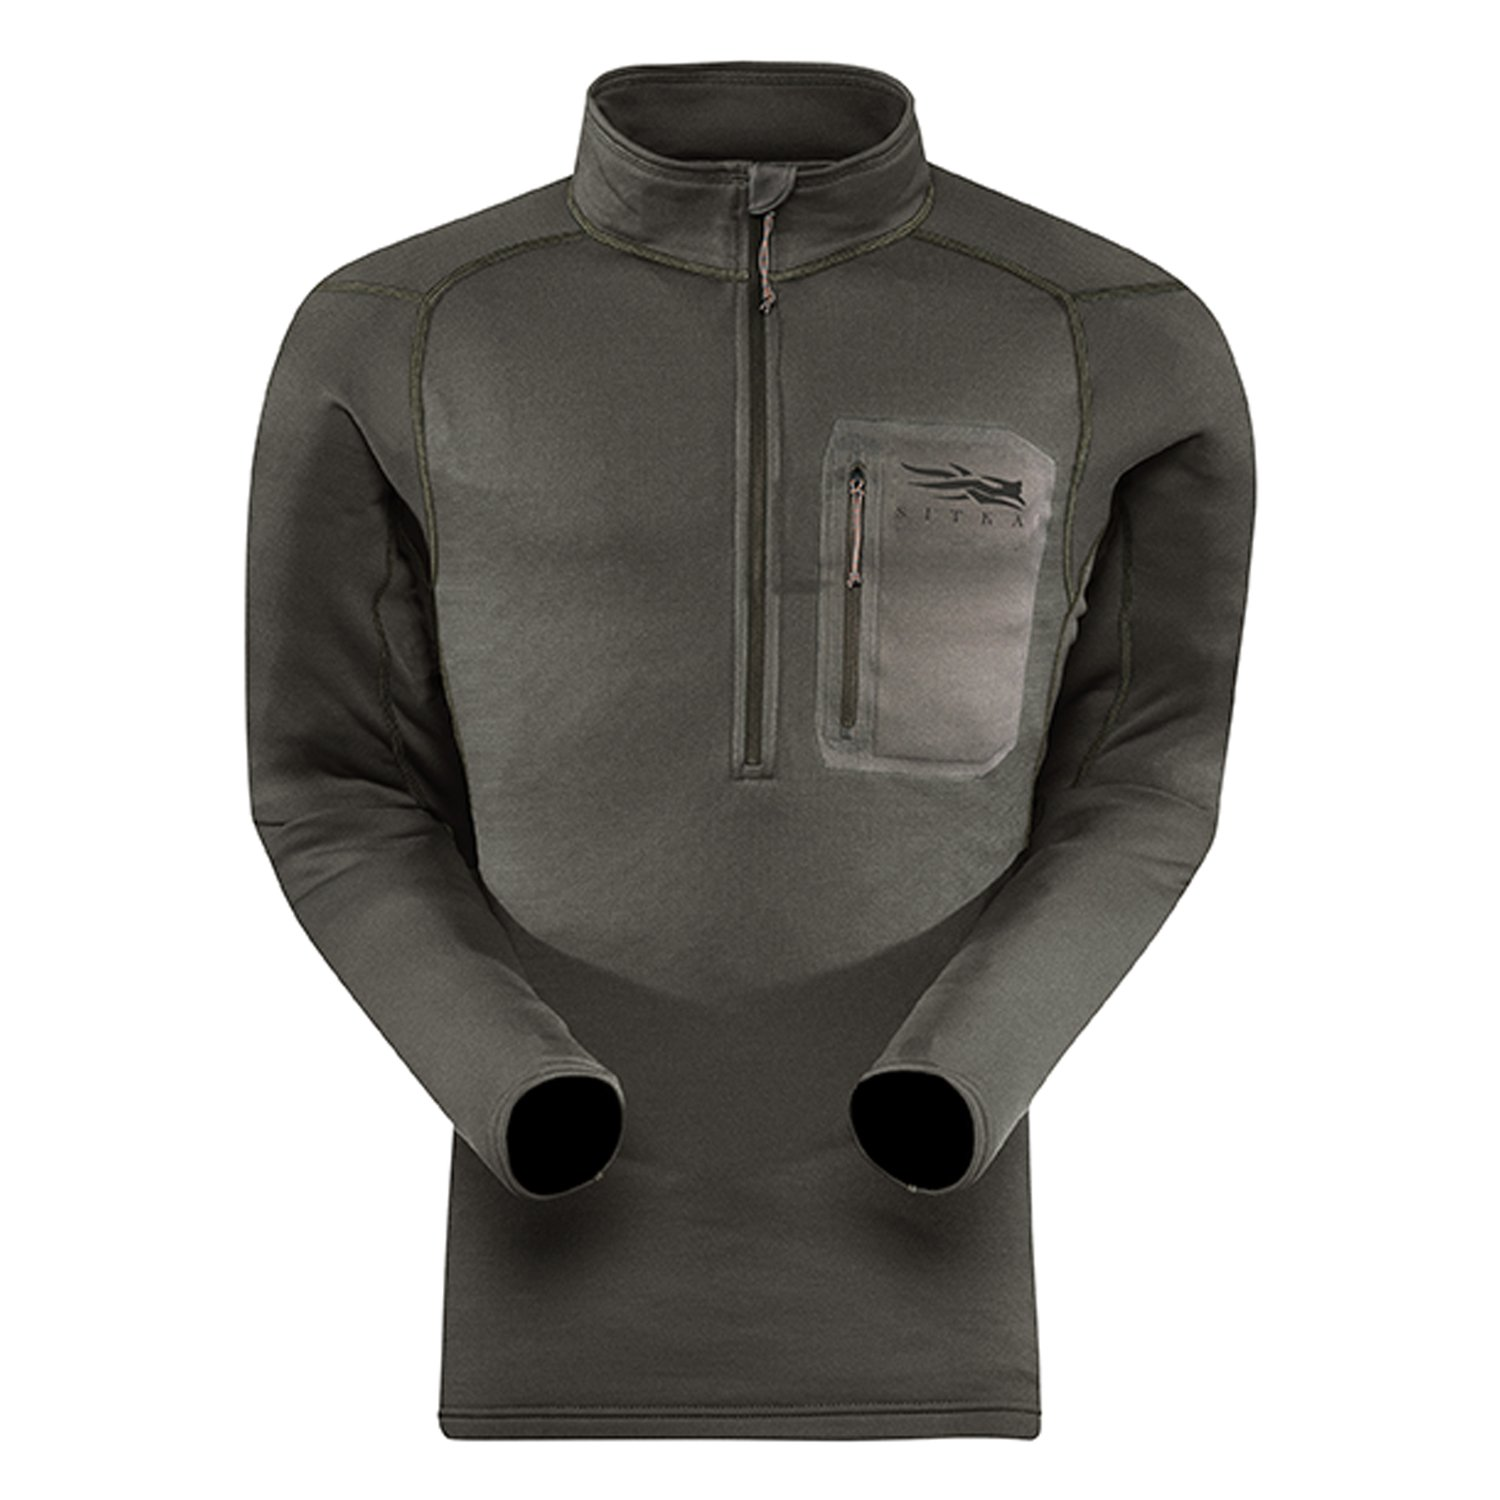 Sitka Gear Core Midweight Zip T, Optifade piemontesische